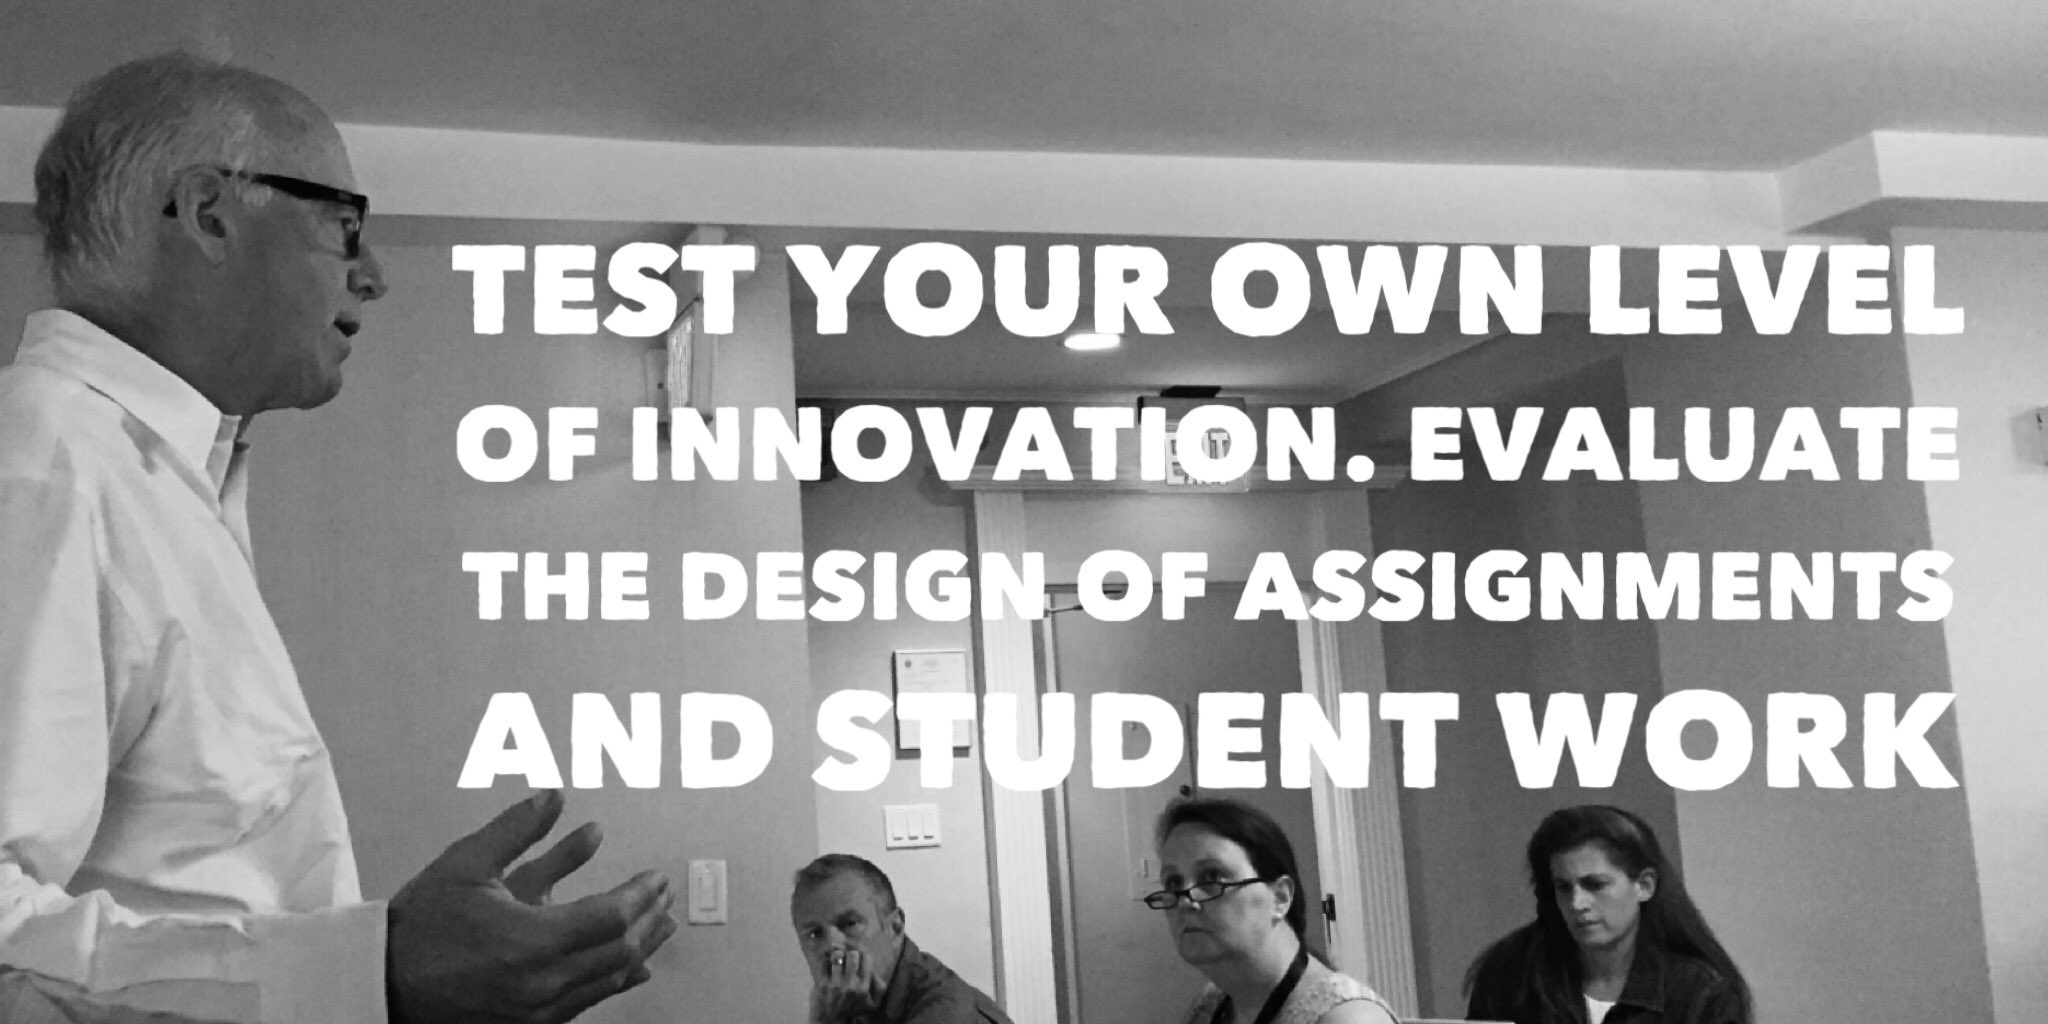 Test your own level of innovation. Evaluate the design of assignments and student work #1st5days #BLC16 https://t.co/TcEob0O7nH